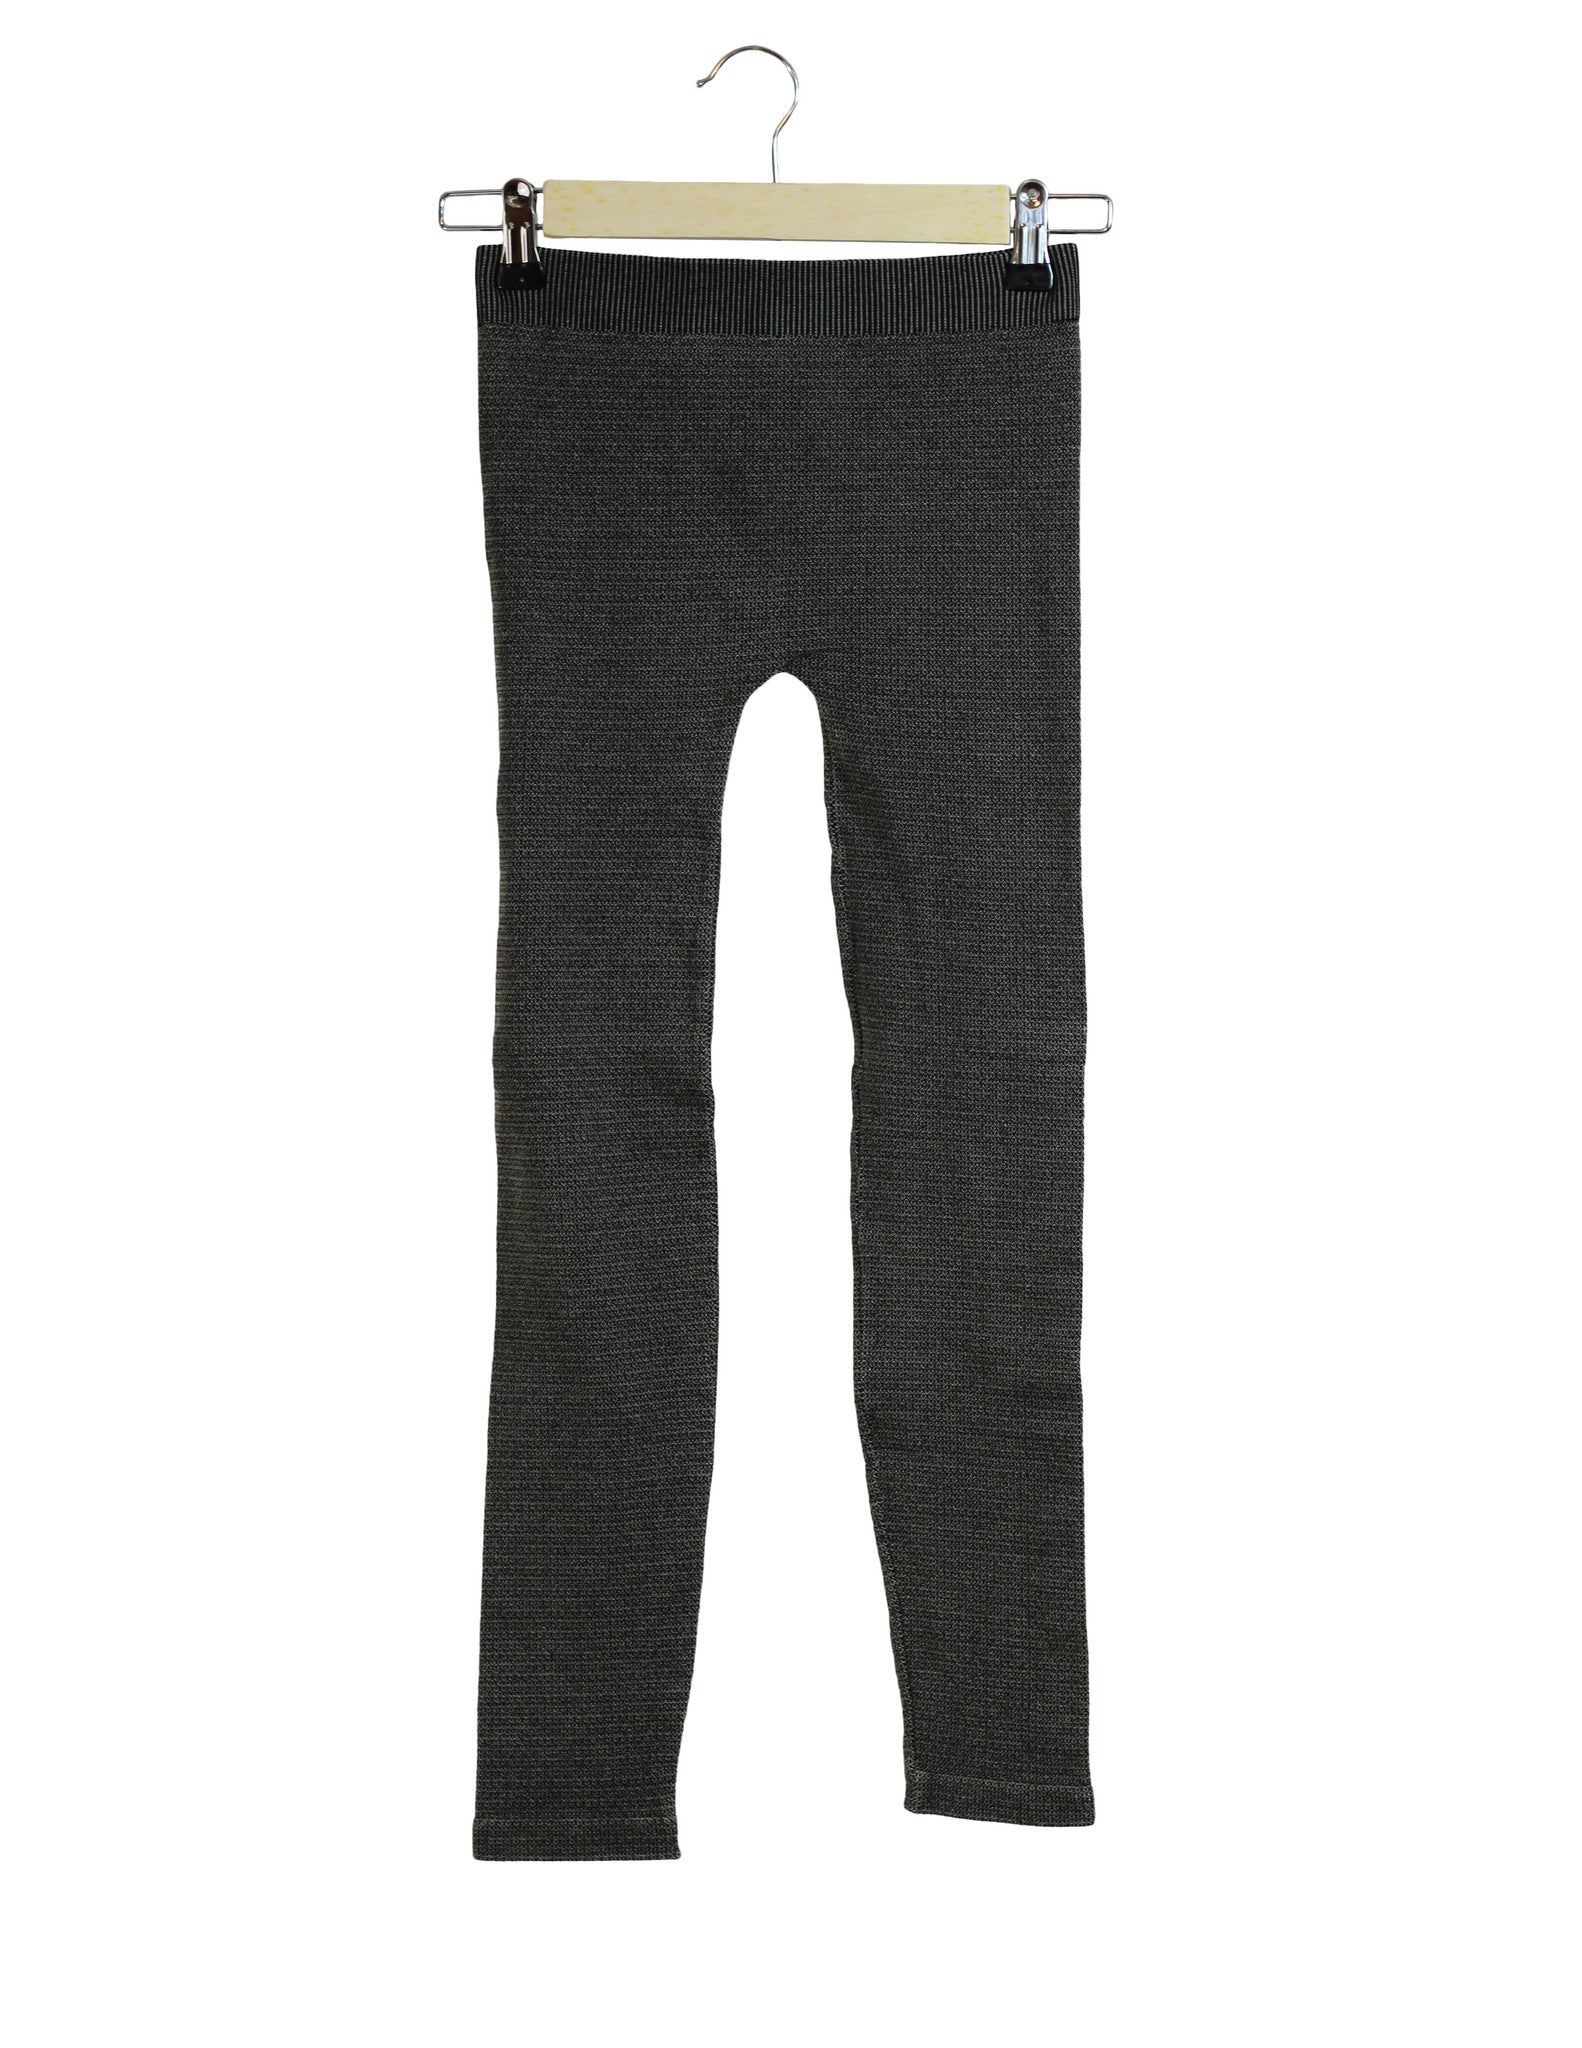 Charcoal Leggings / Ethical Fashion